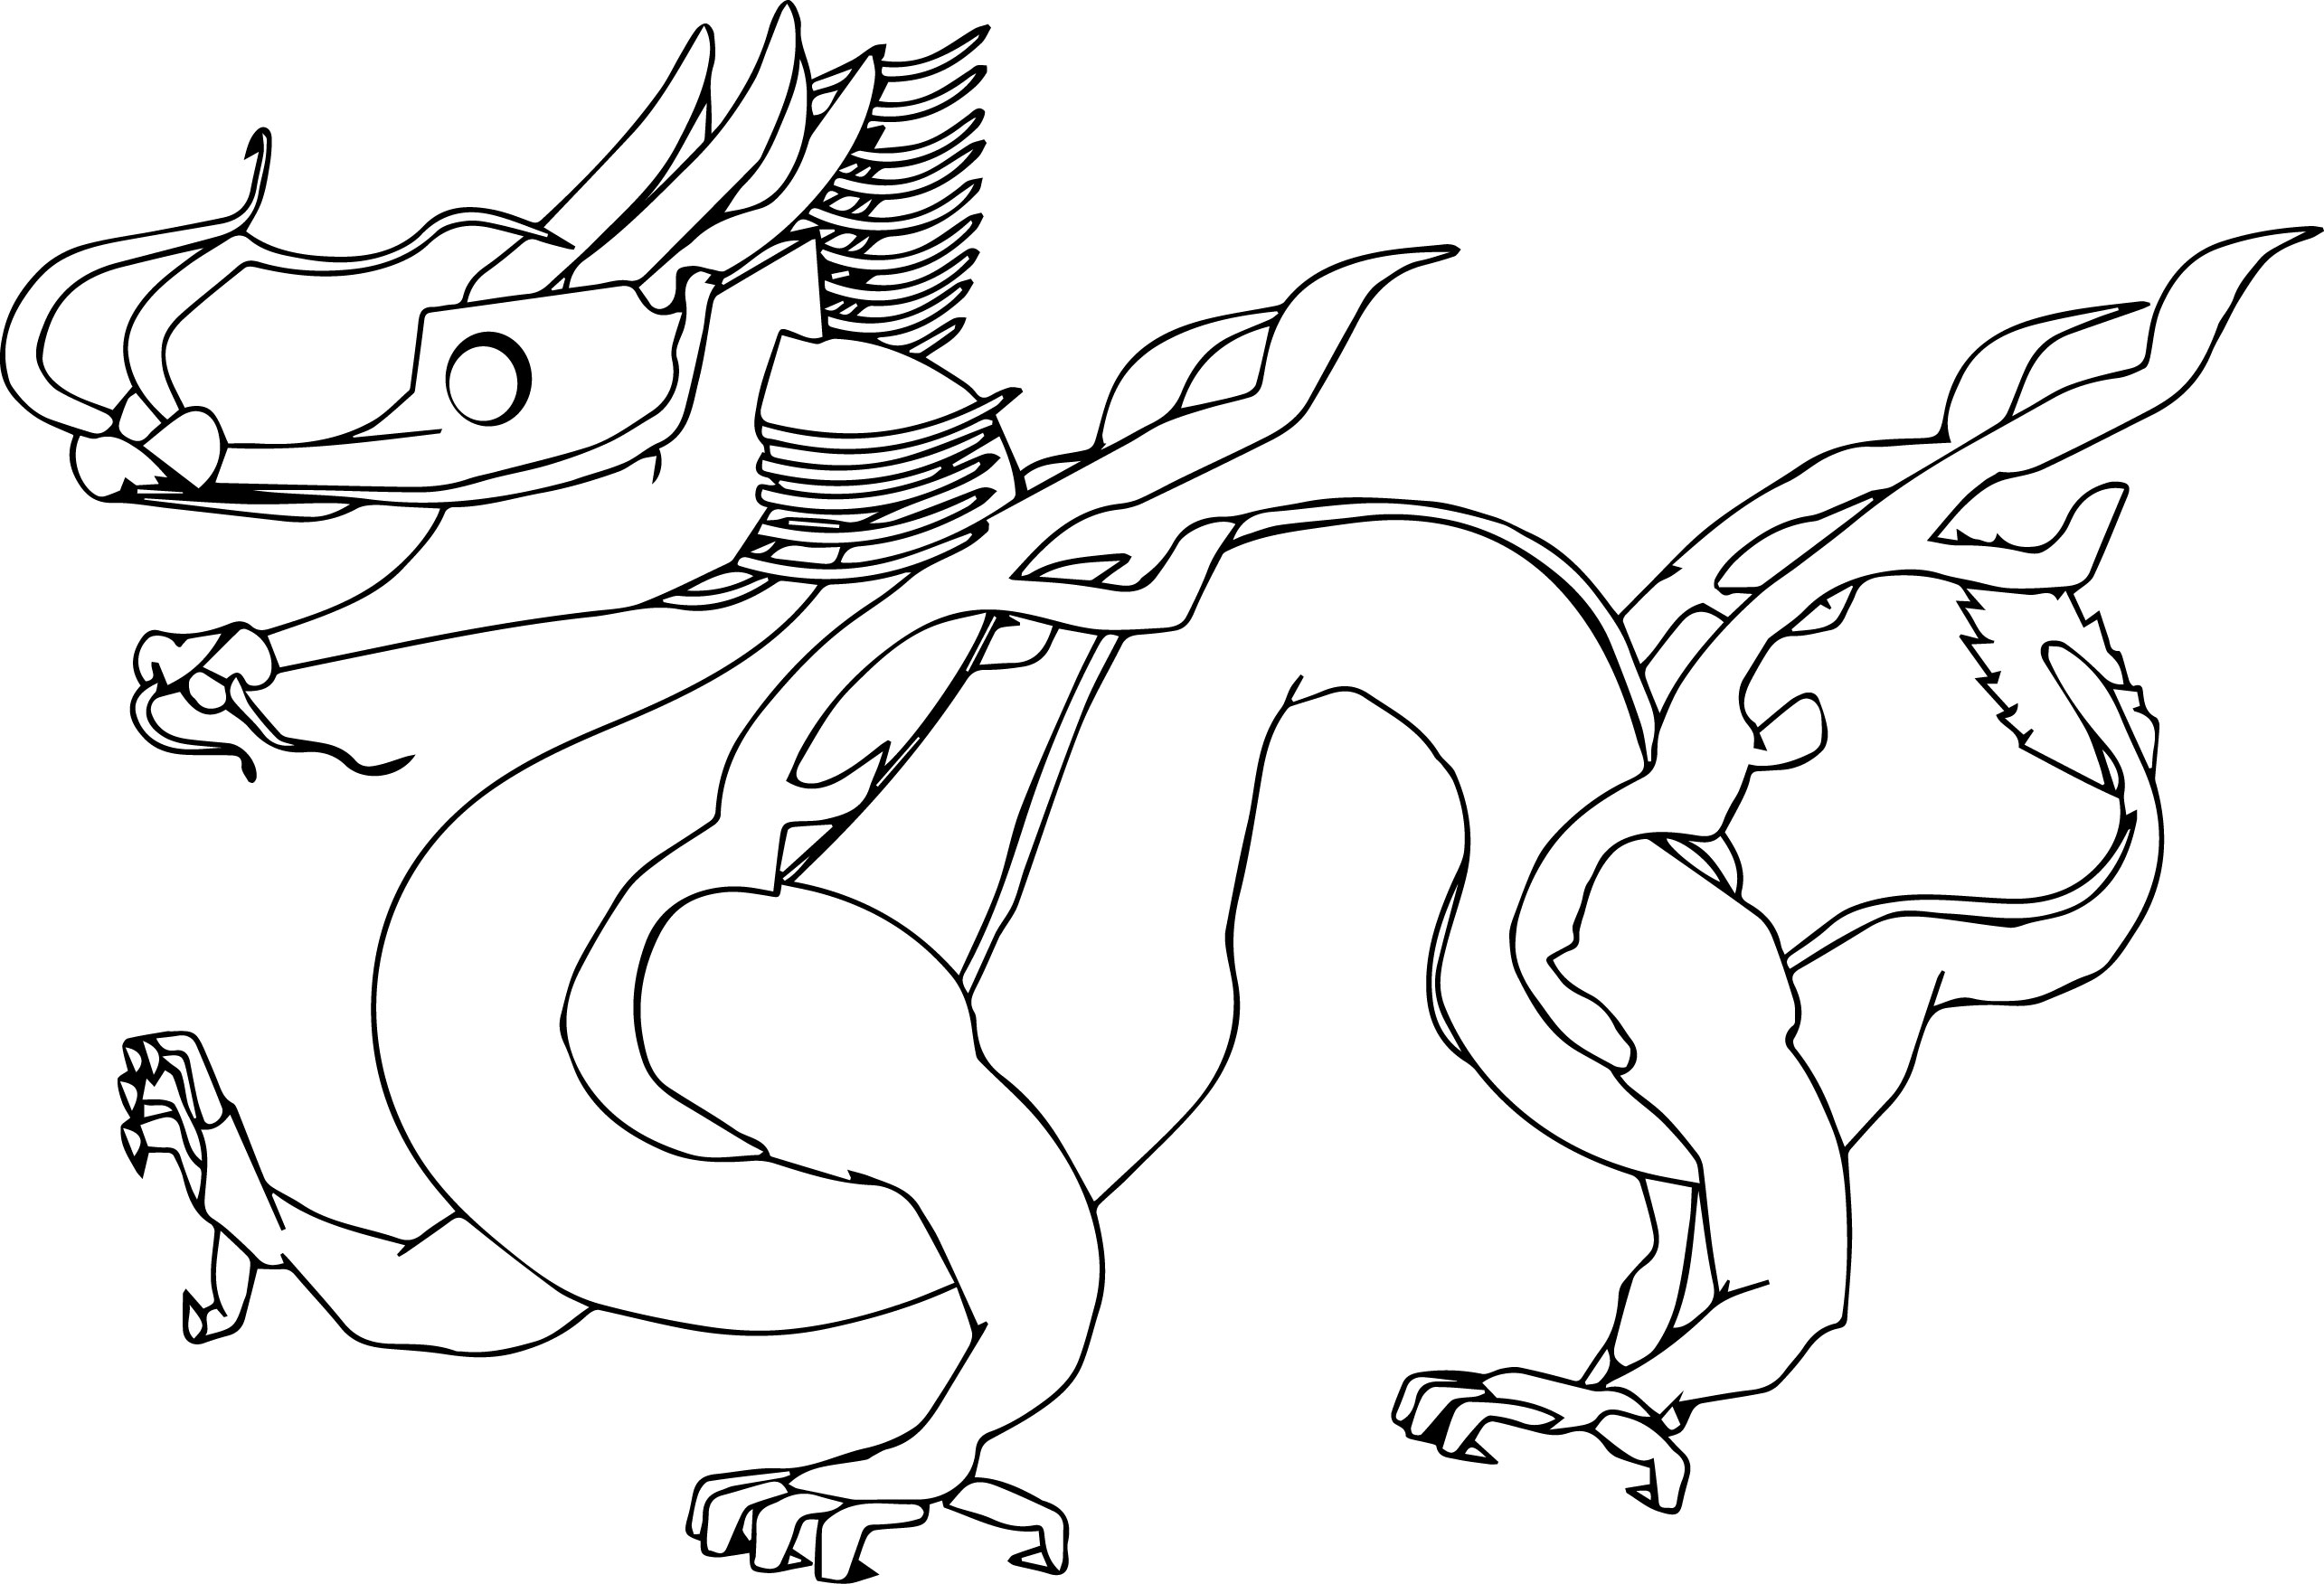 Dragon Realistic Other Coloring Page | Wecoloringpage.com